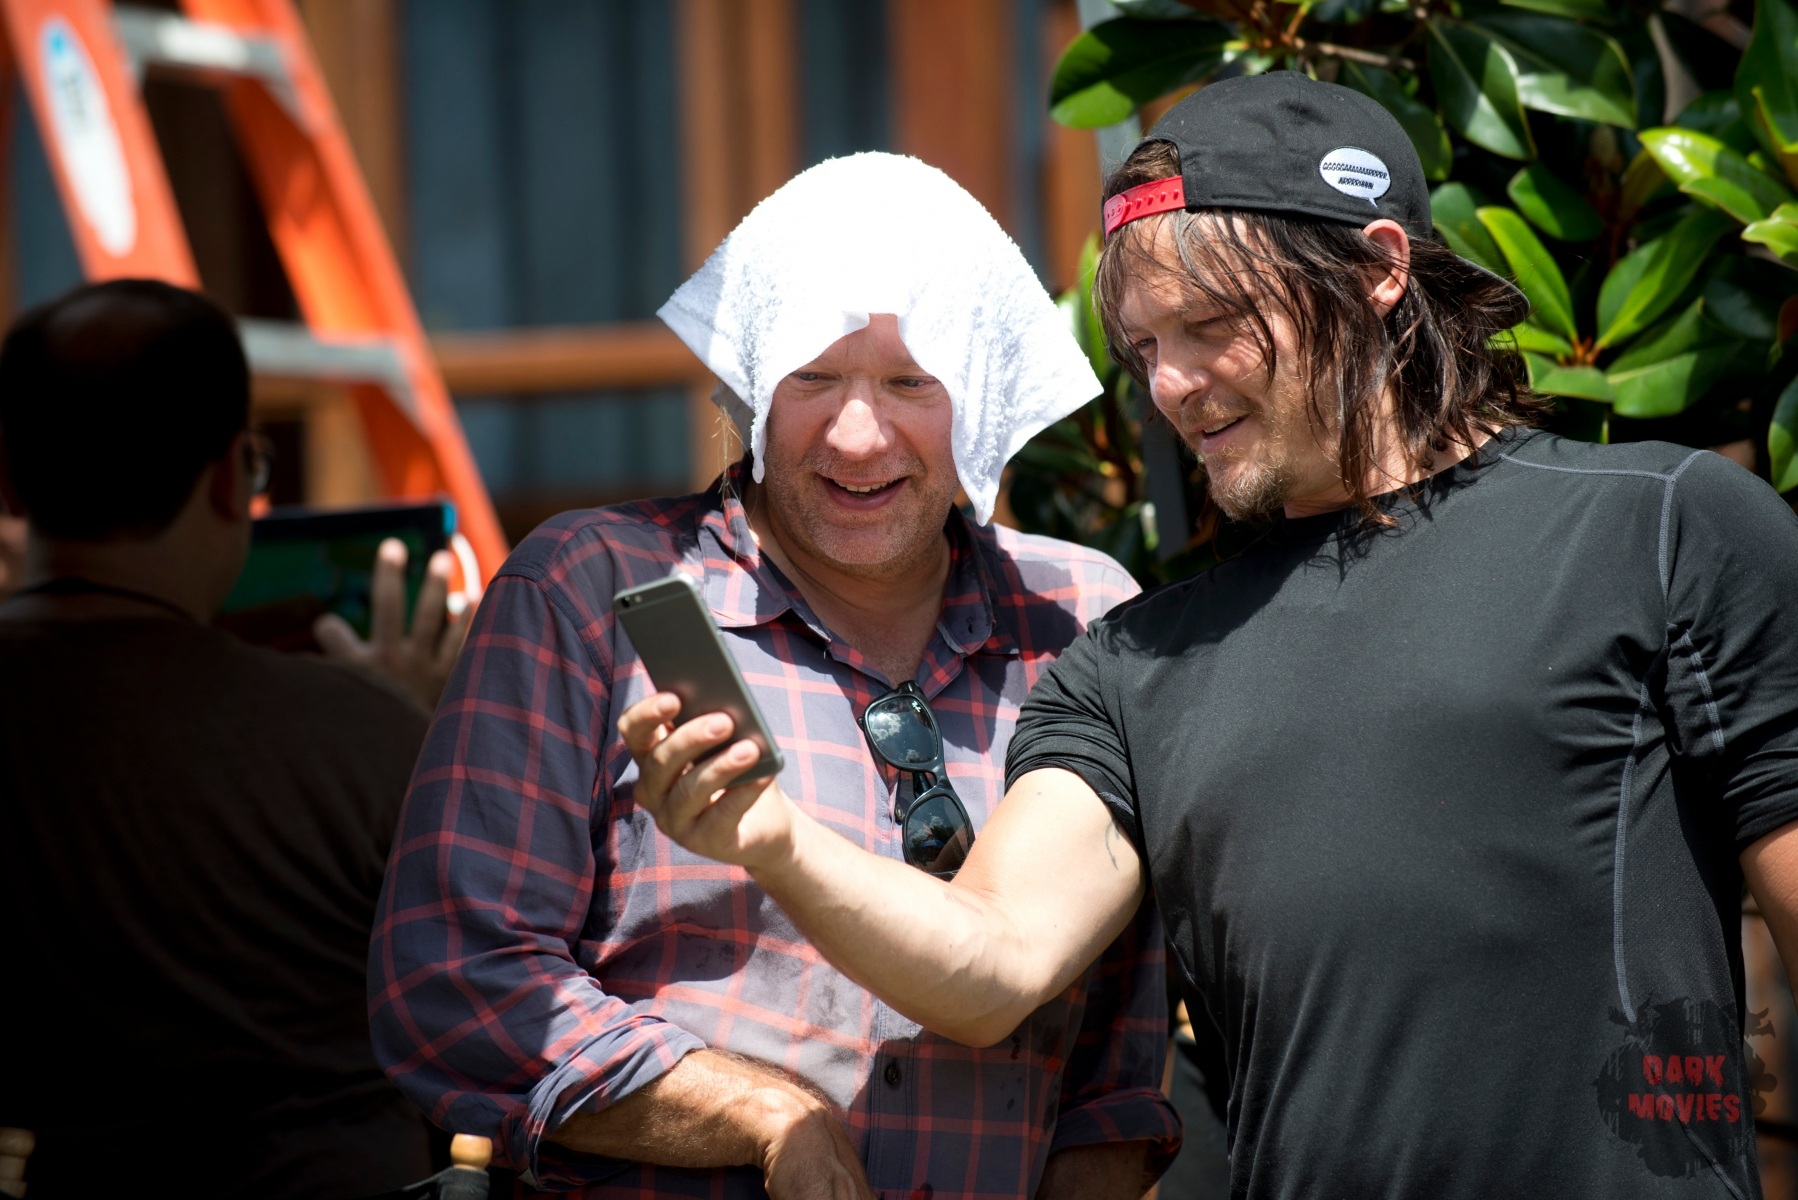 Greg Nicotero and Norman Reedus as Daryl Dixon - The Walking Dead _ Season 5, Episode 5 _ BTS - Photo Credit: Gene Page/AMC